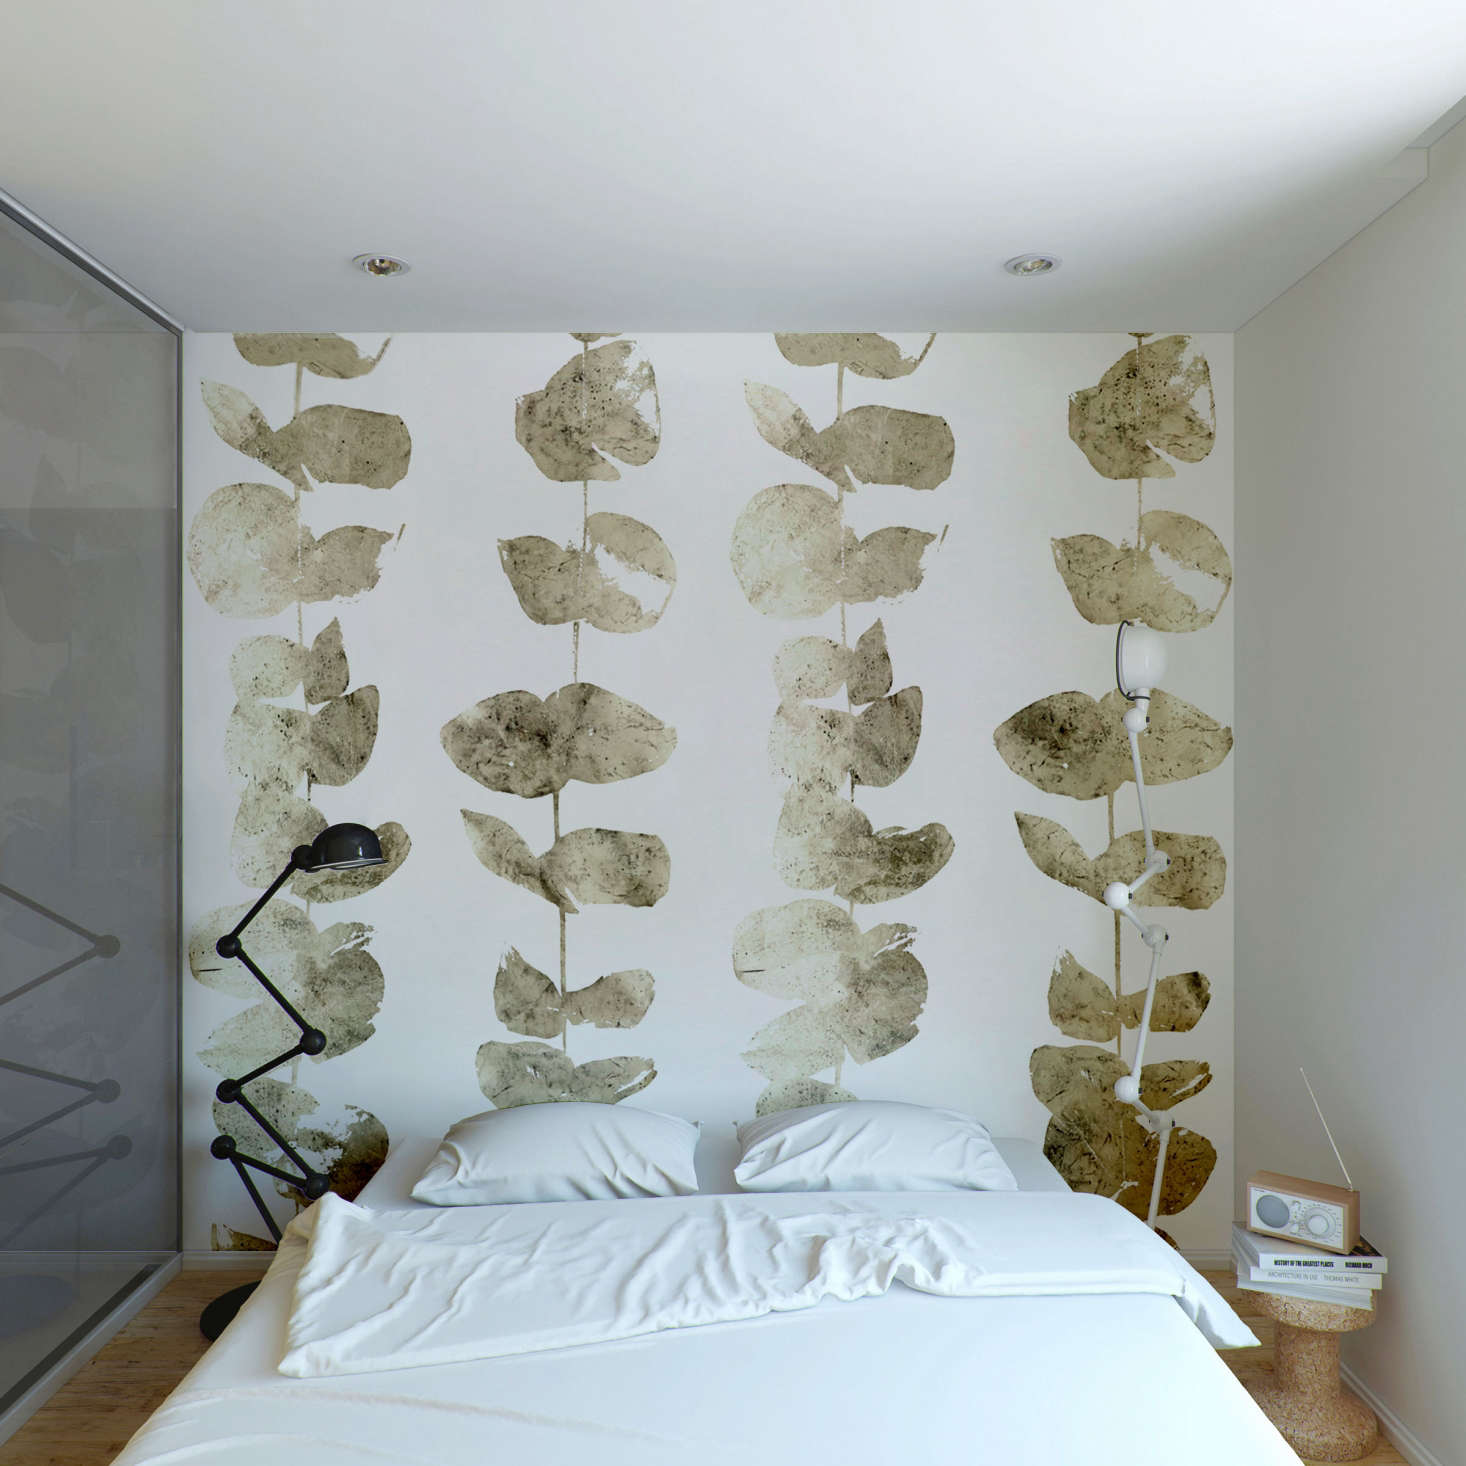 custhom columbia road wallpaper remodelista The Gilded Age Handmade Wallpaper from